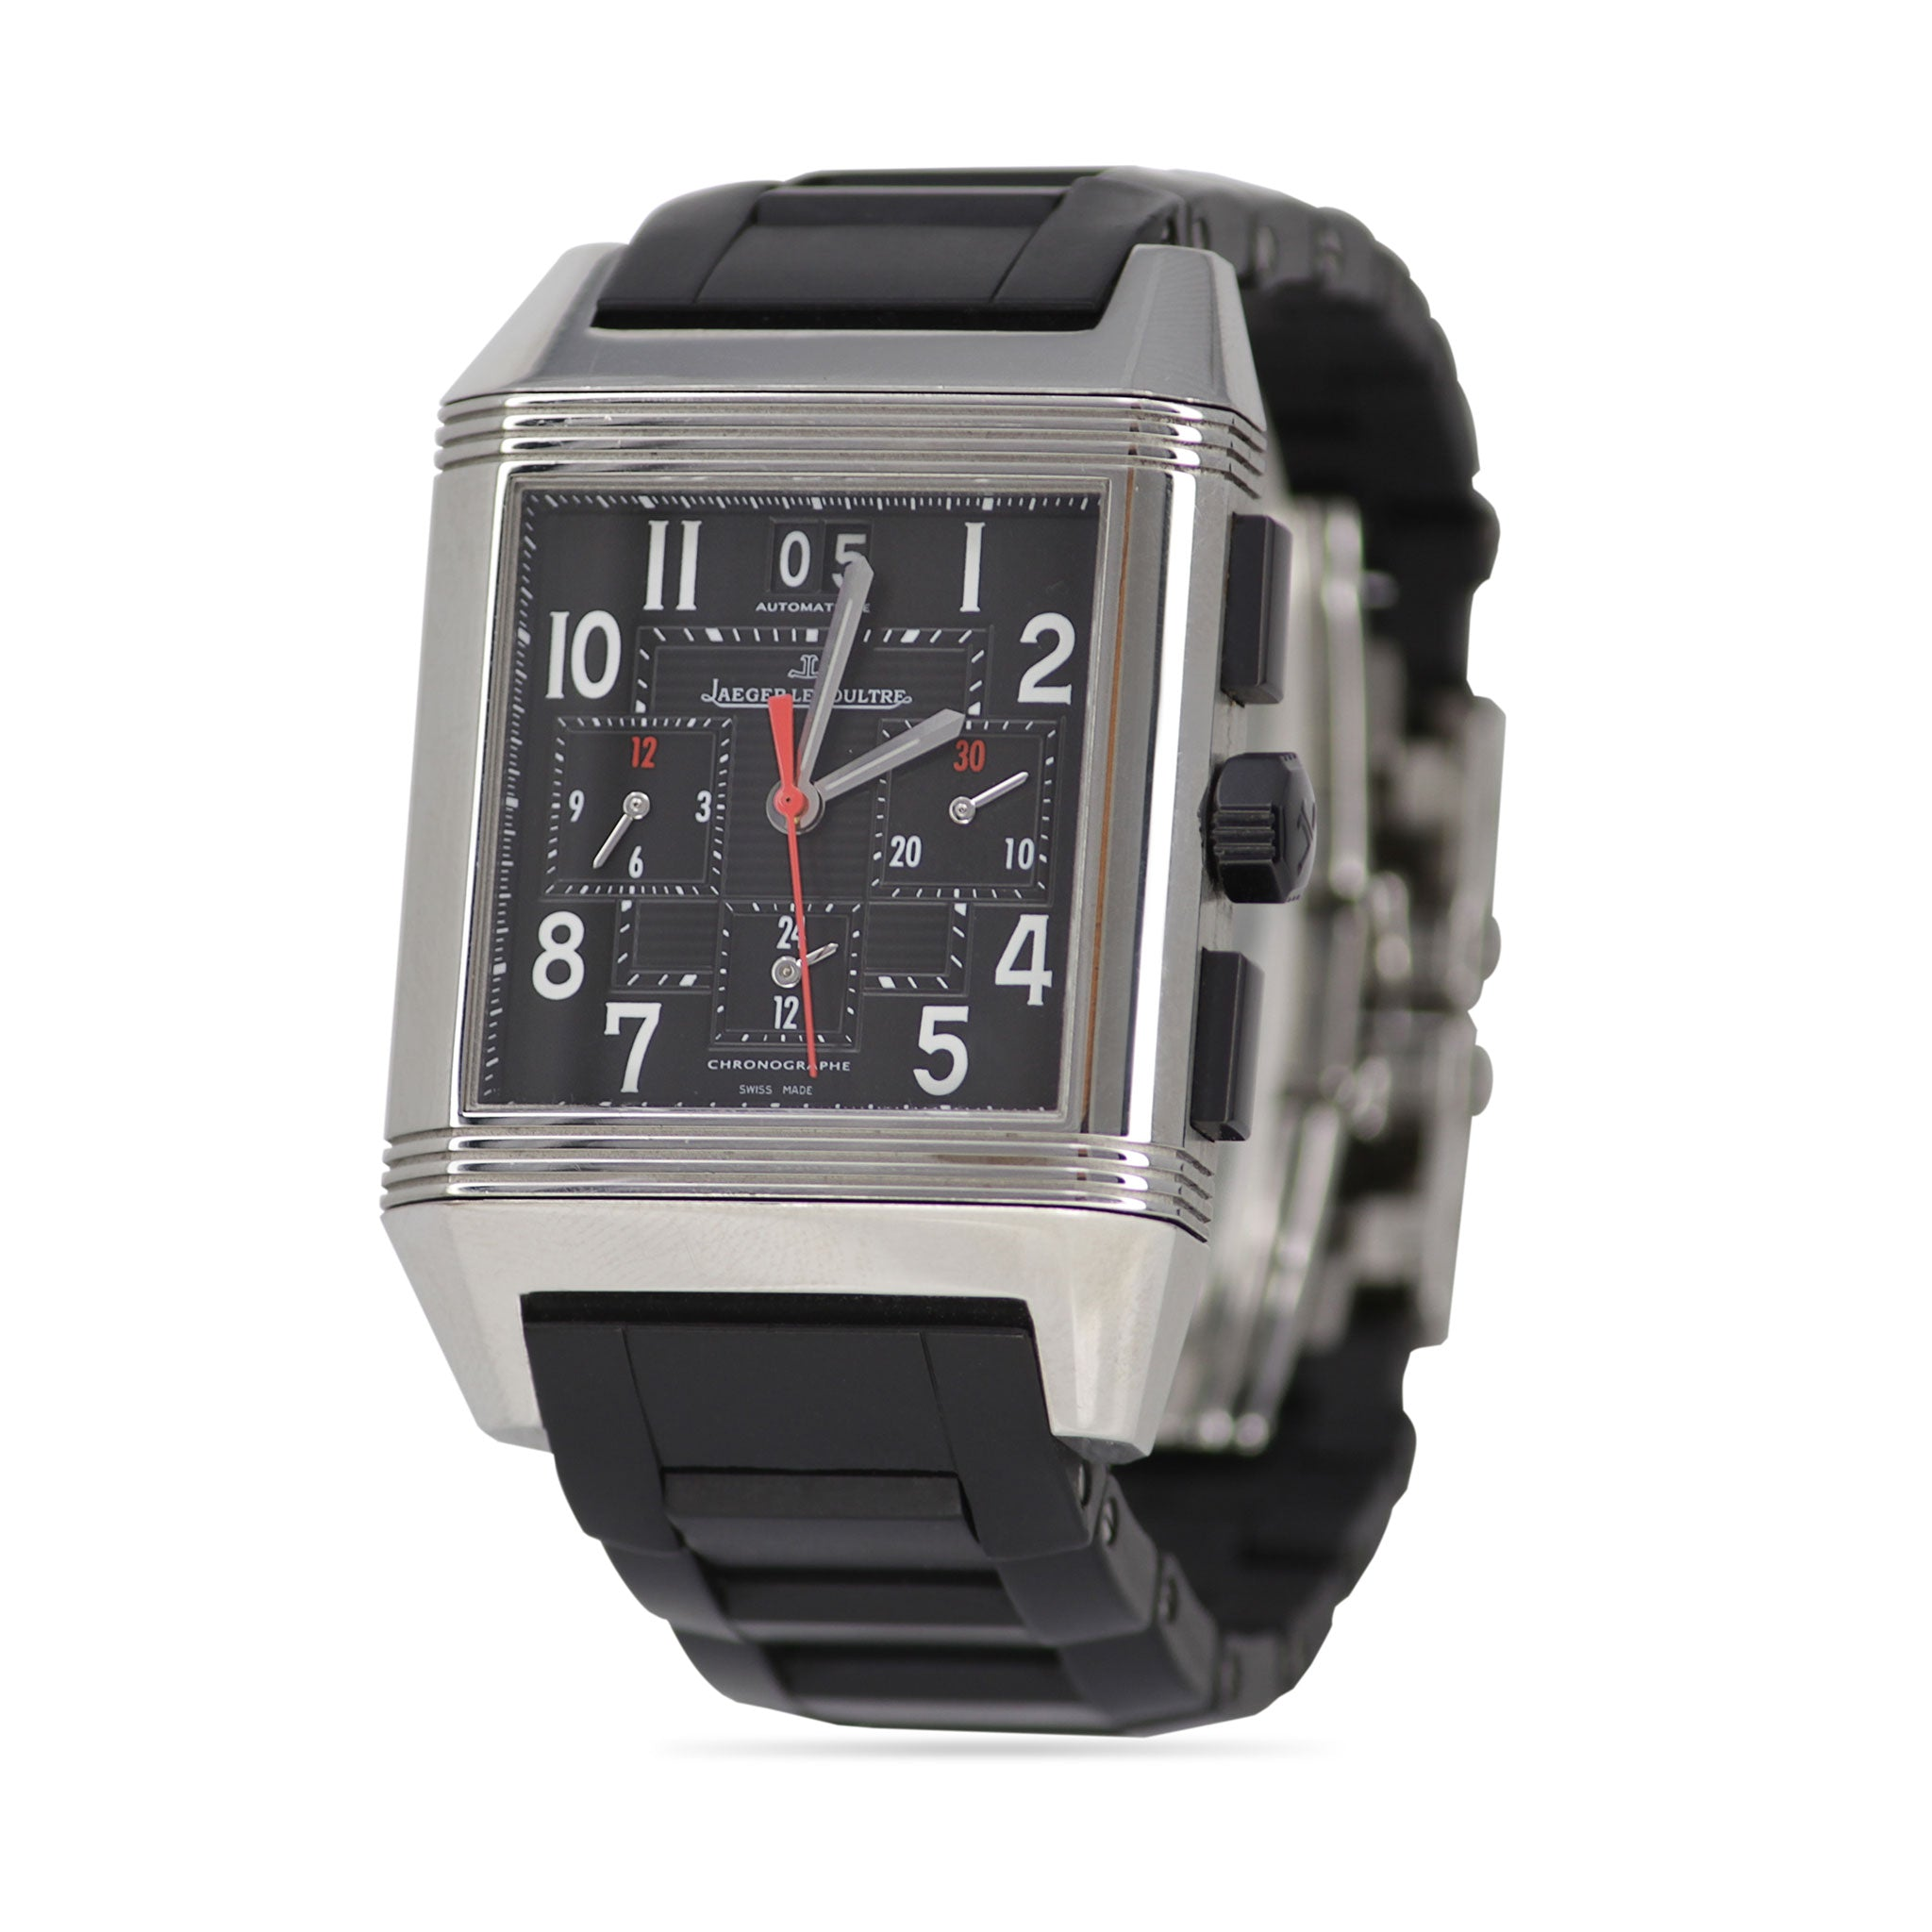 Jaeger-LeCoultre Reverso Squadra Chronograph GMT Watch